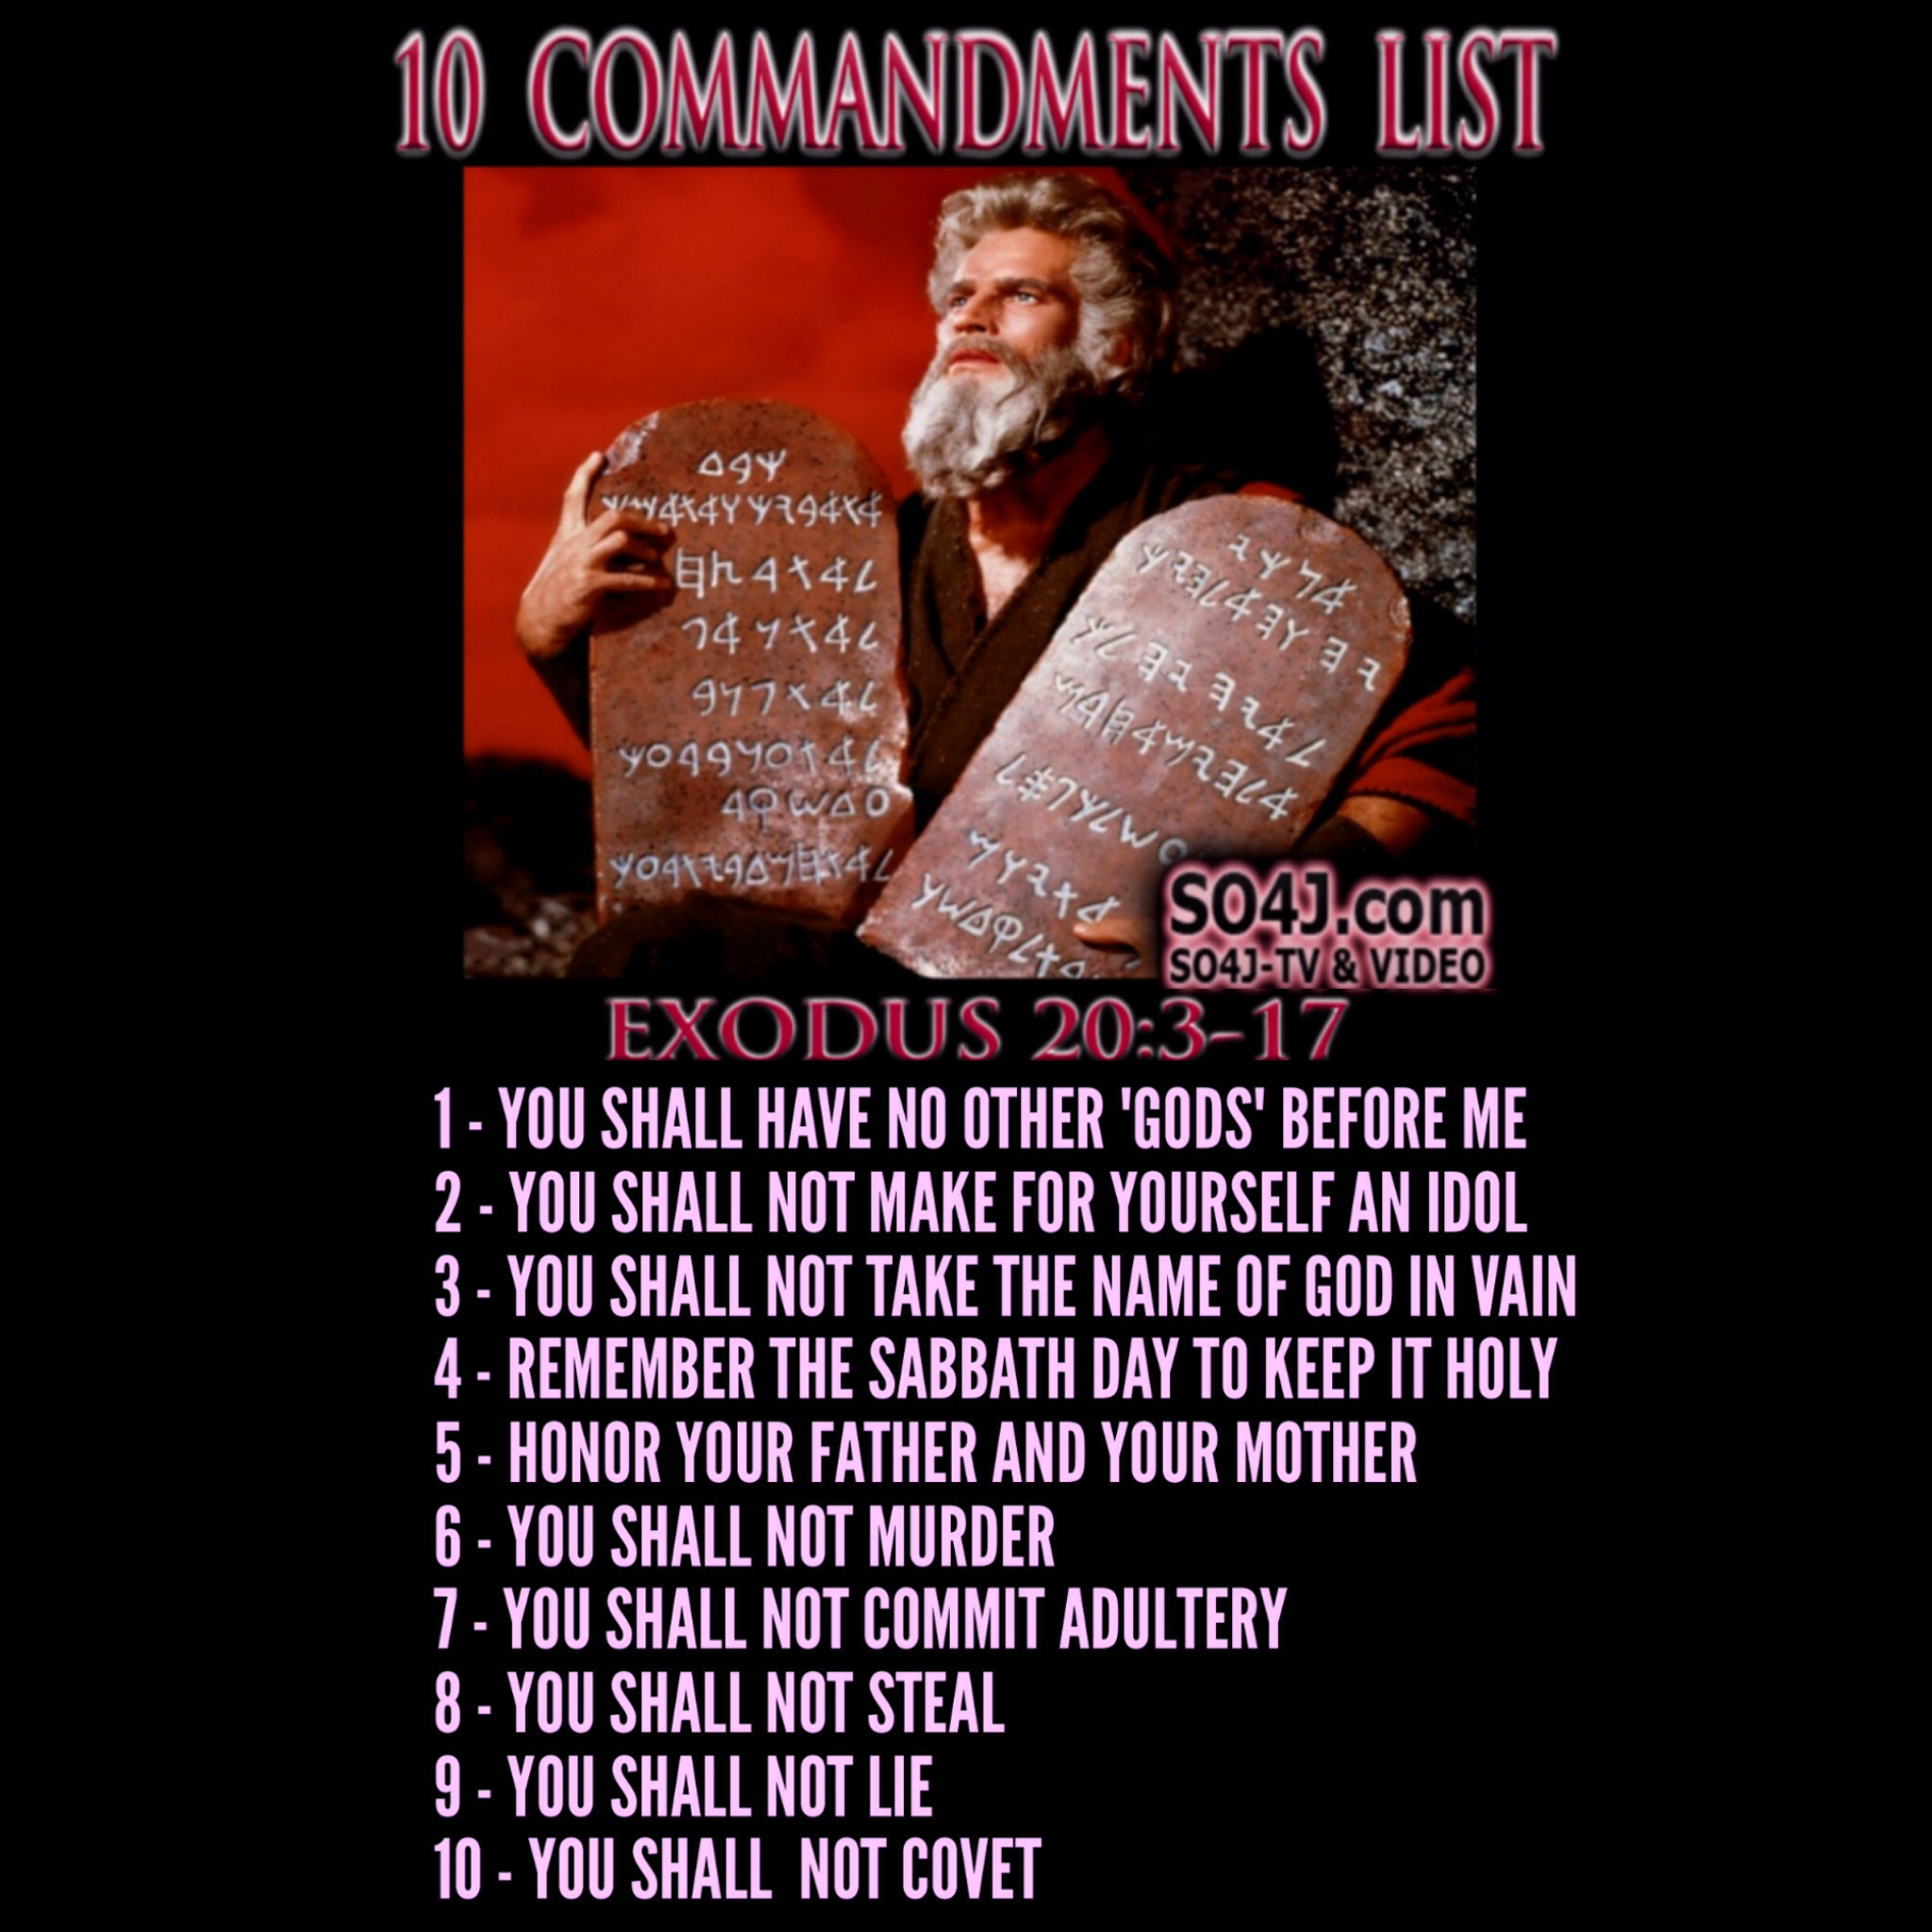 10 Commandments List - Exodus 20:3-17 - SO4J-TV - SO4J.com